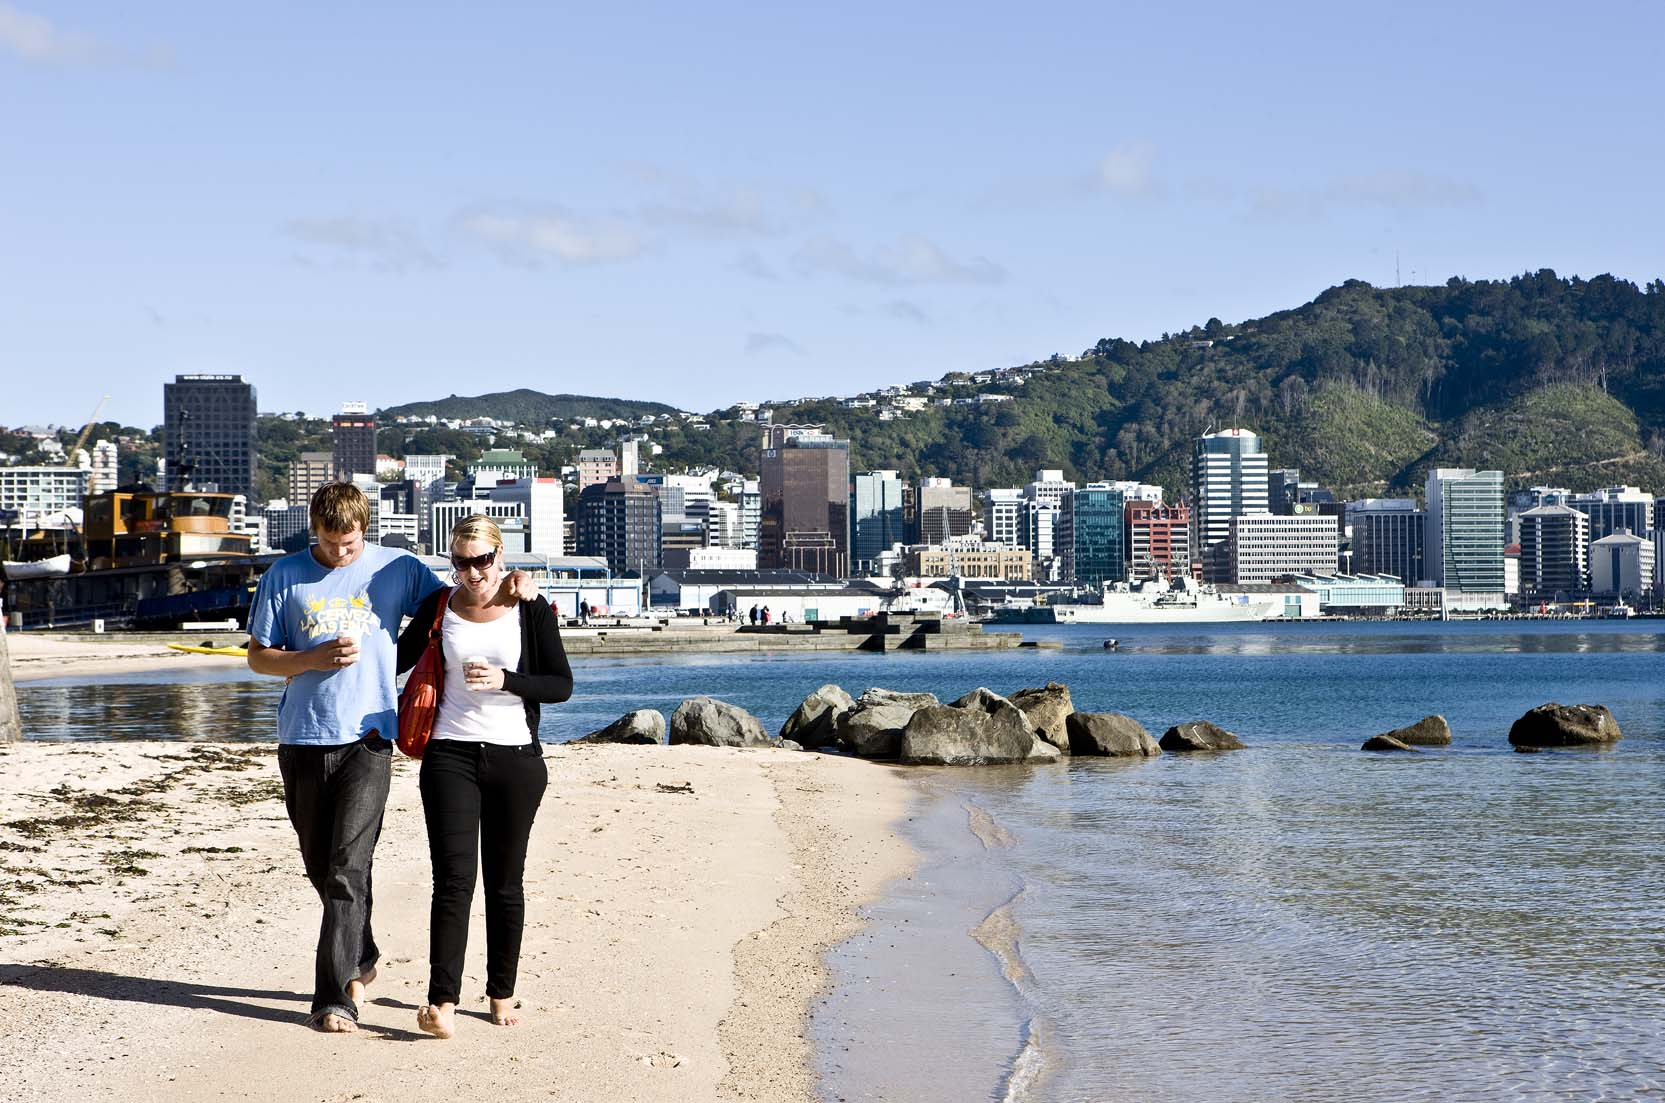 oriental_bay_beach_wellington_nz_photo_nicola_edmonds